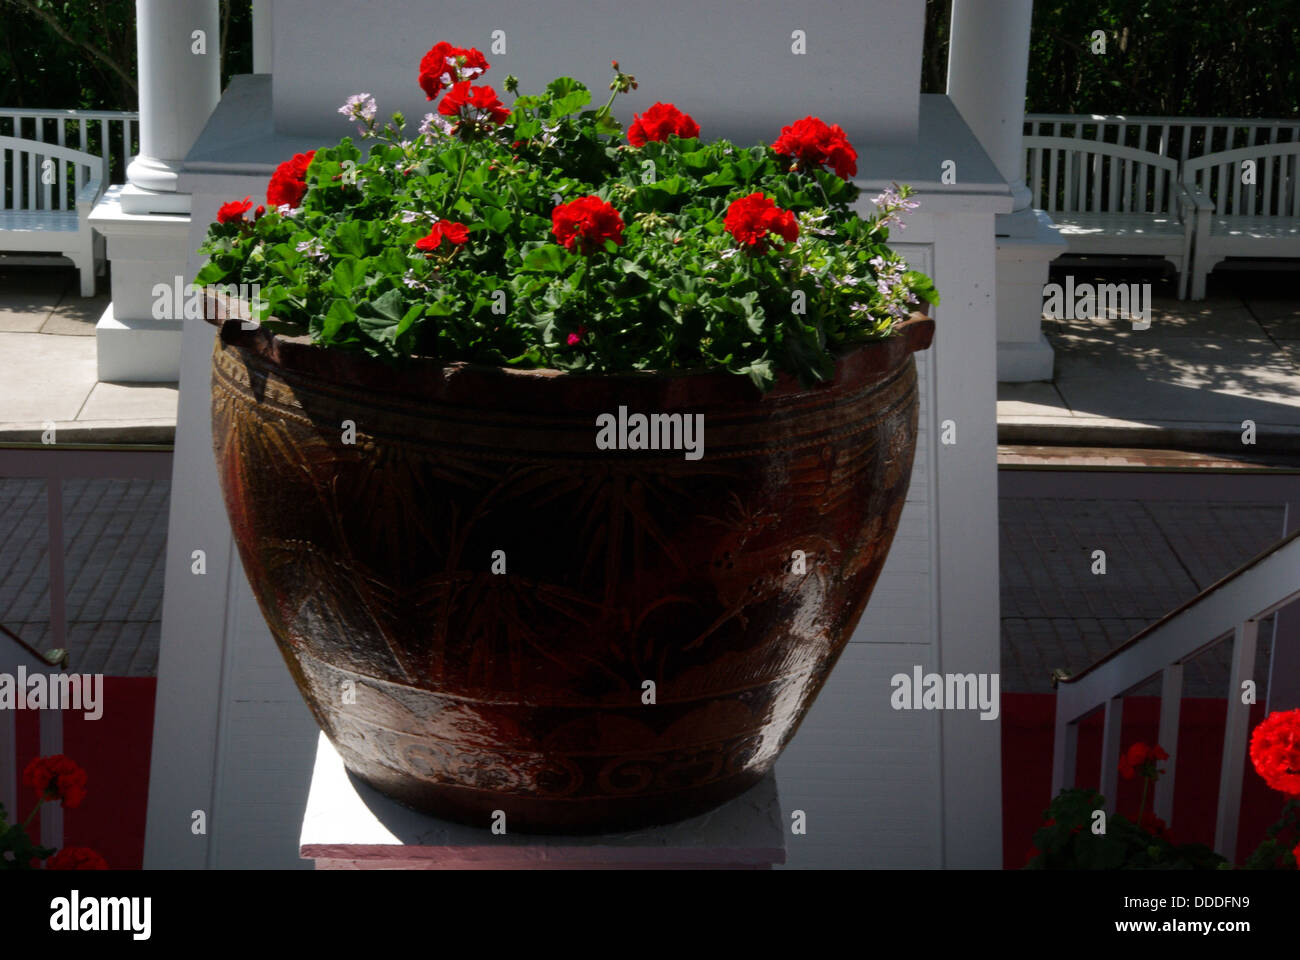 Red flowers in a brown stoneware plant pot - Stock Image